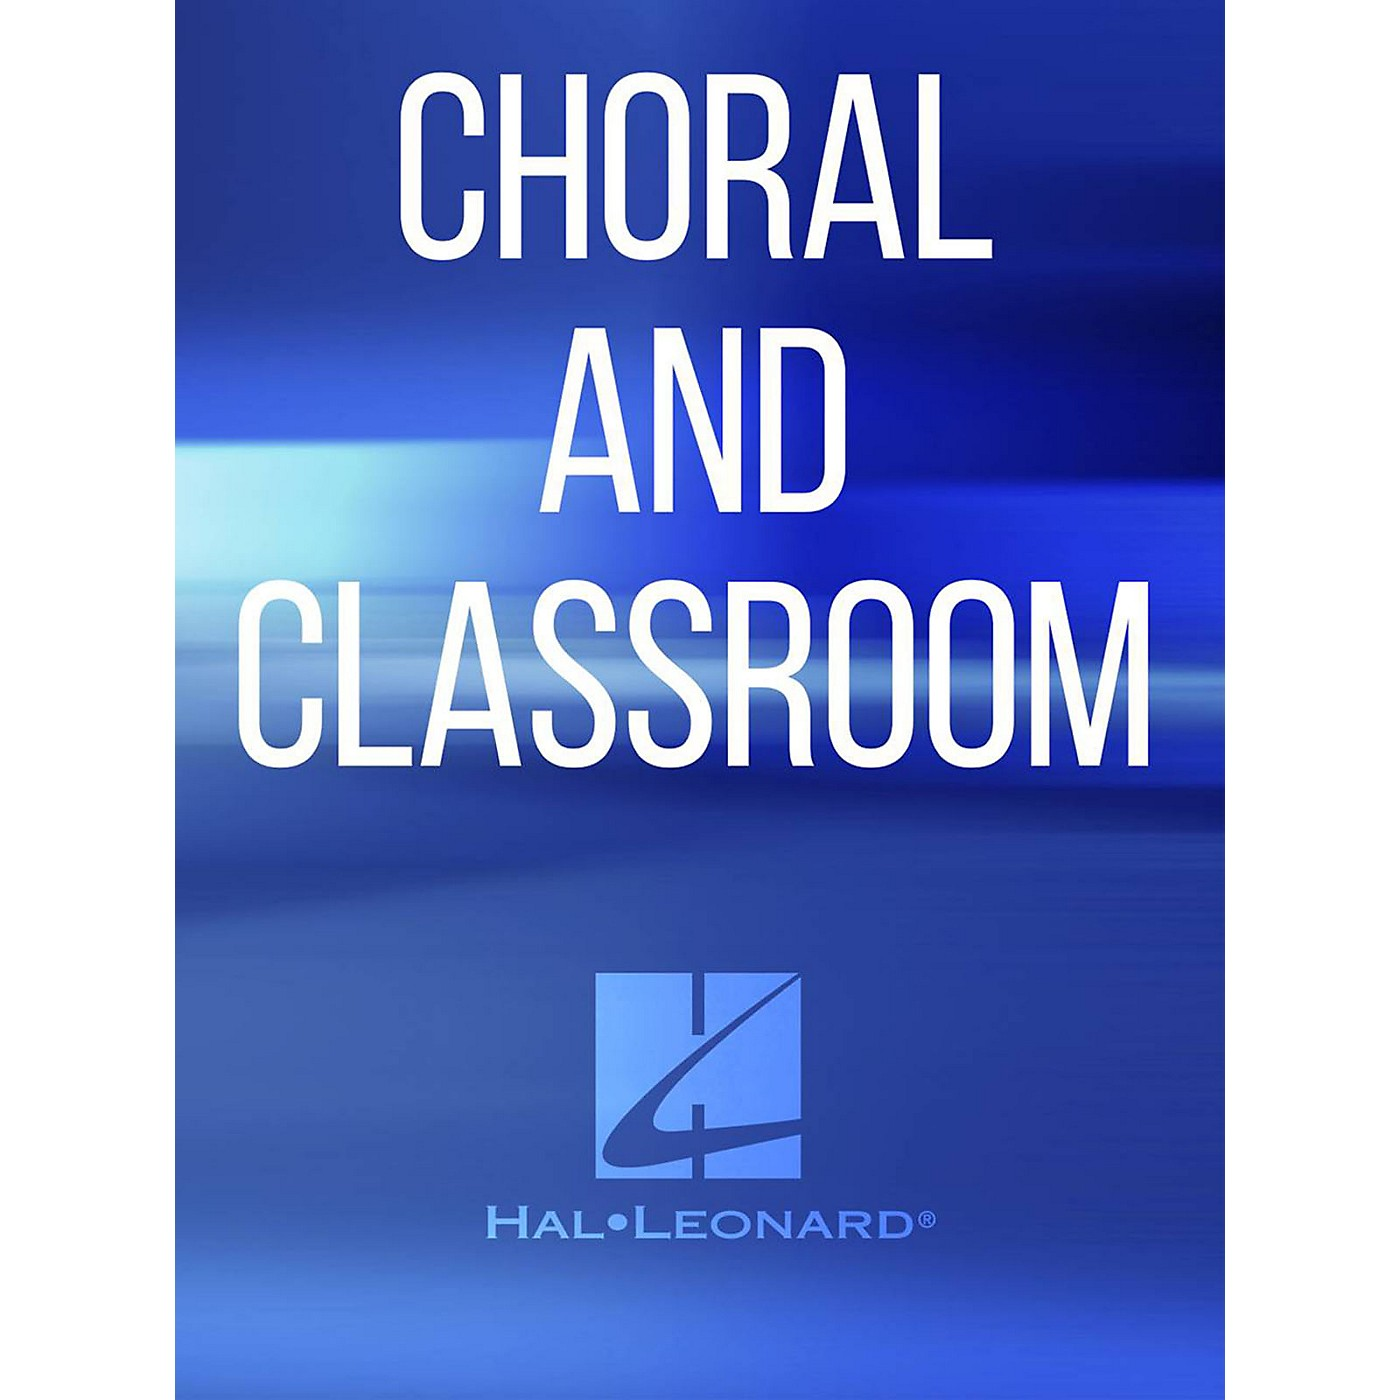 Hal Leonard Under the Sea (from The Little Mermaid) SATB a cappella Arranged by Kirby Shaw thumbnail